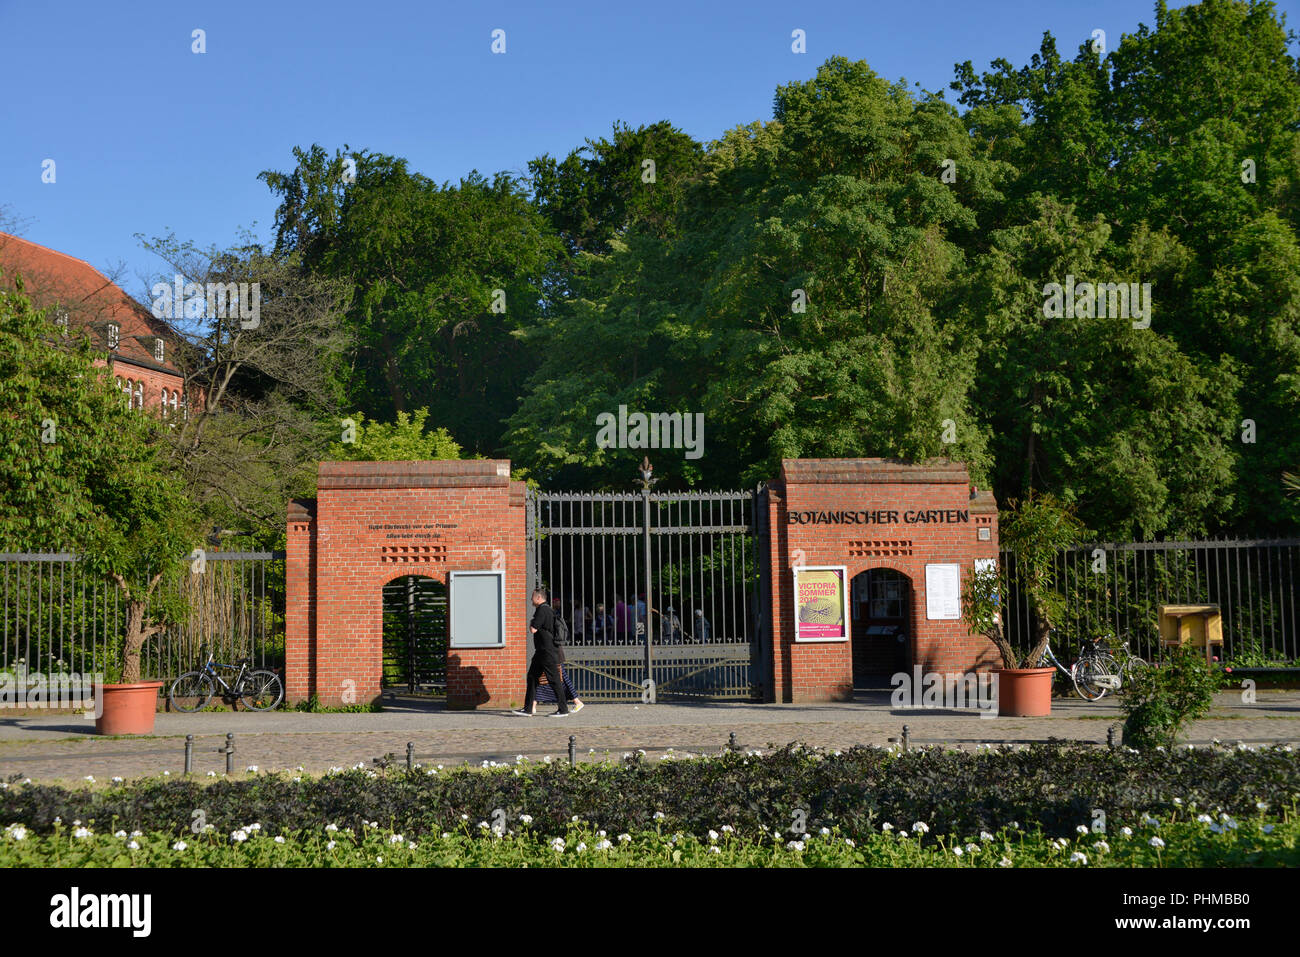 Botanischer Garten Berlin High Resolution Stock Photography And Images Alamy